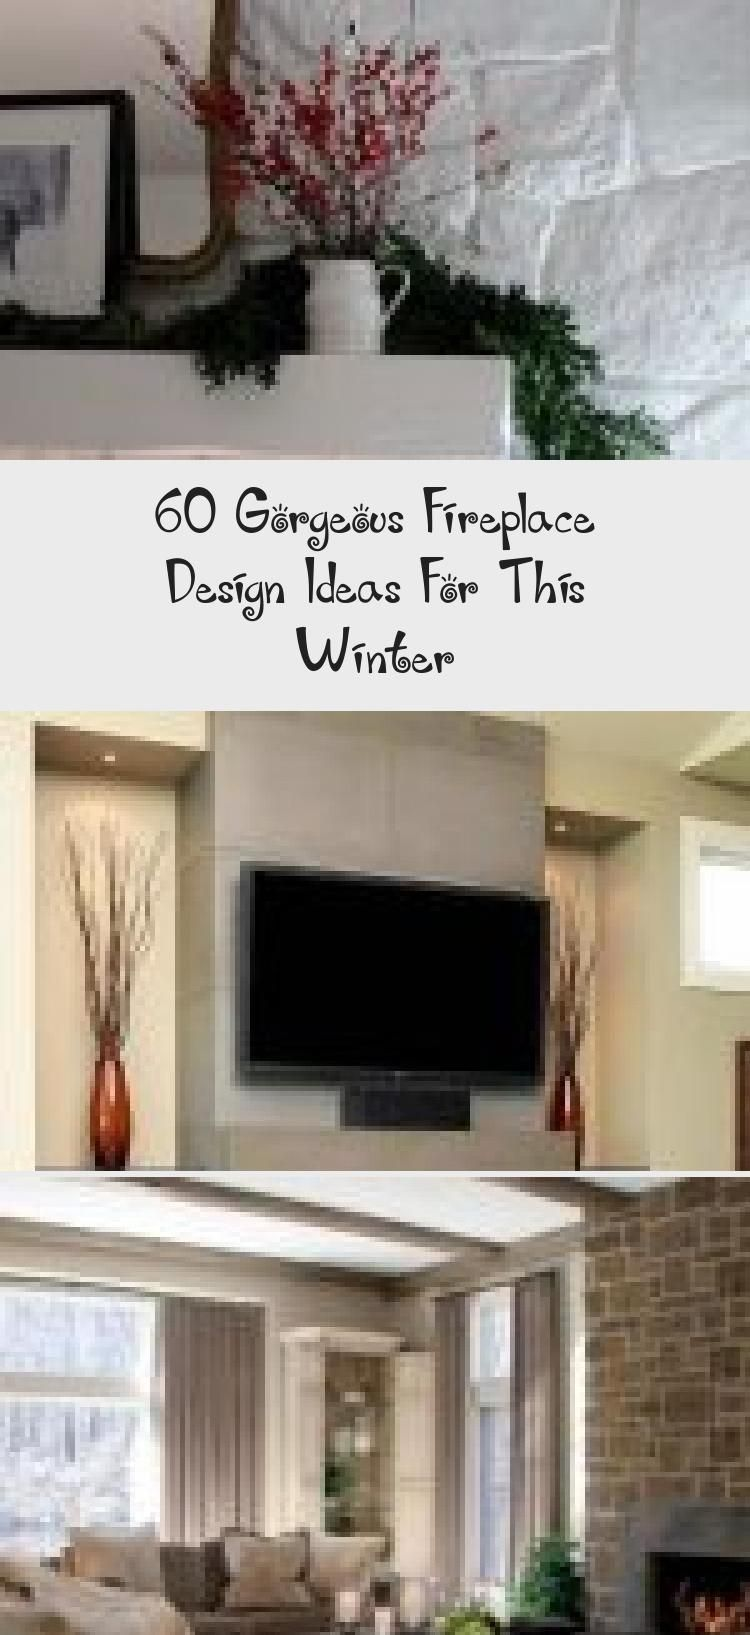 60 Gorgeous Fireplace Design Ideas For This Winter 60 Gorgeous Fireplace Design Ideas For This Winter interior